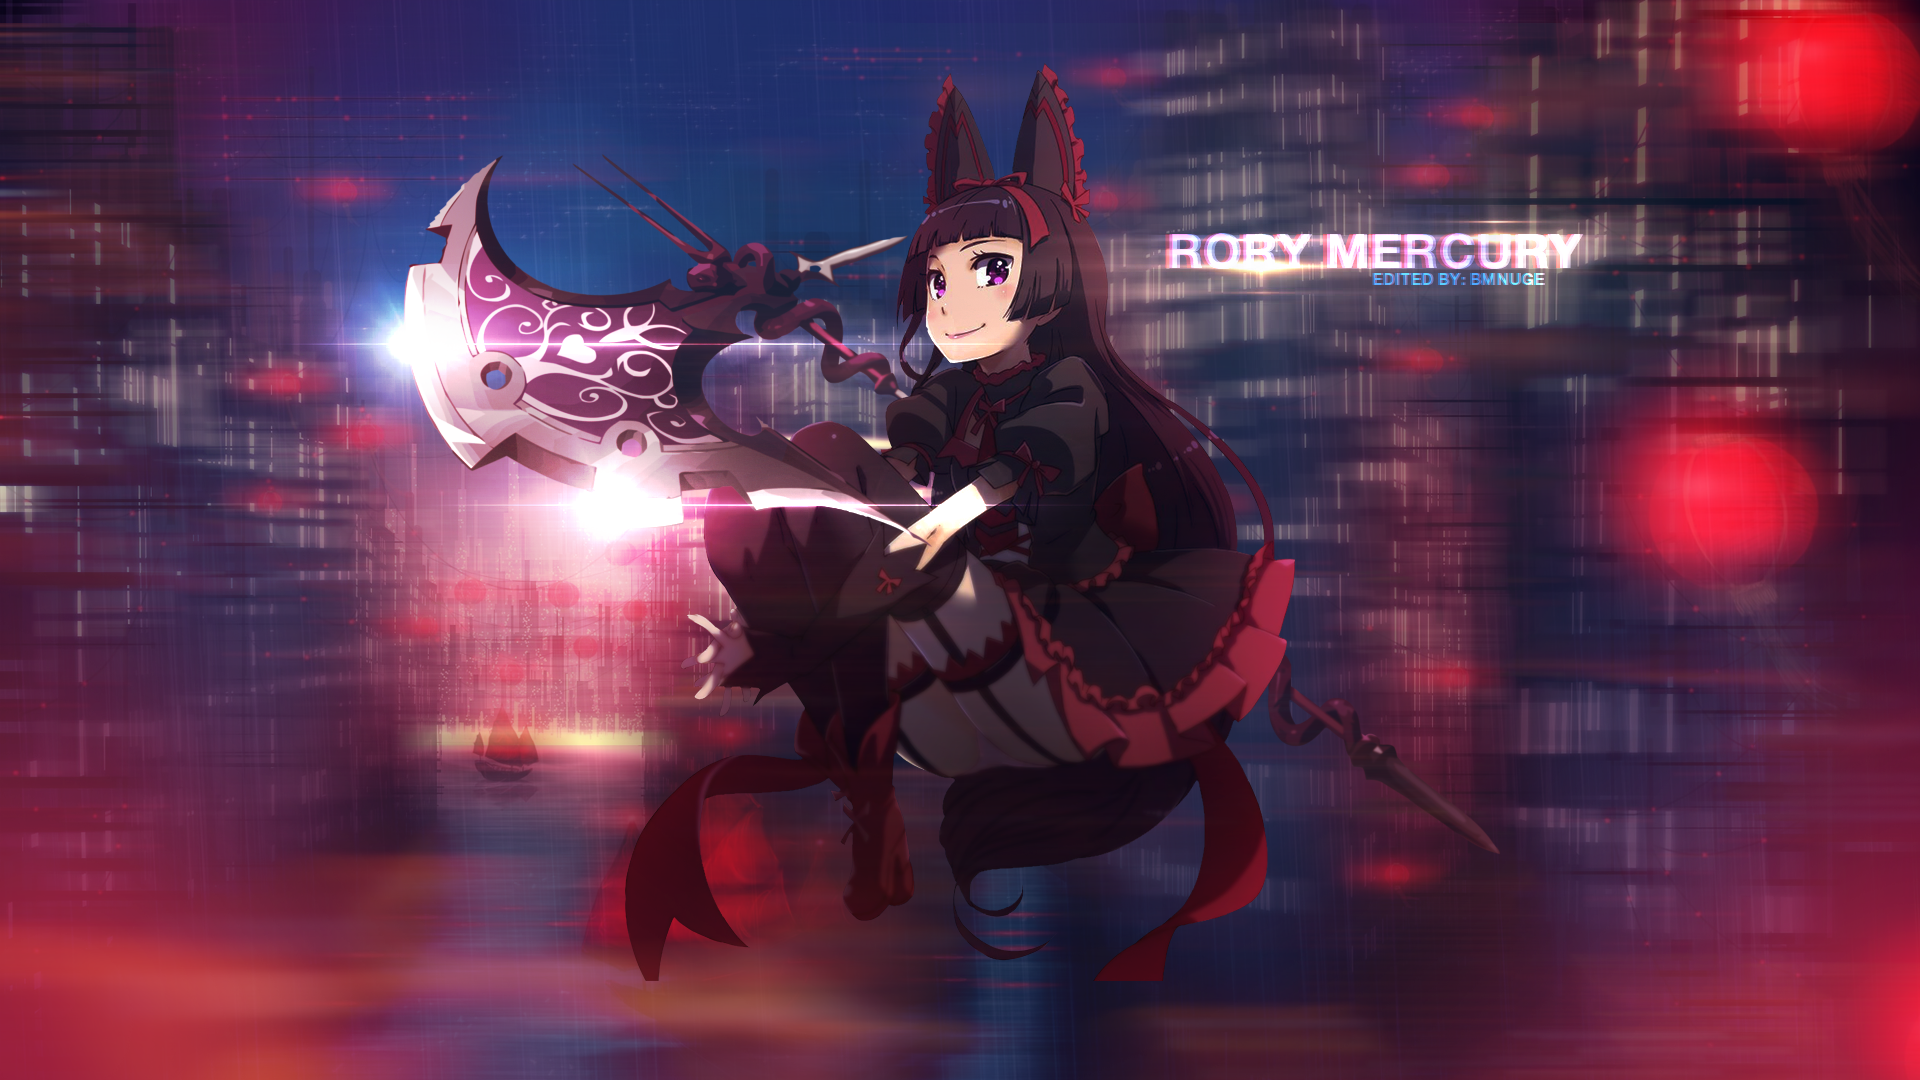 Rory Mercury Hd Wallpaper Background Image 1920x1080 Id